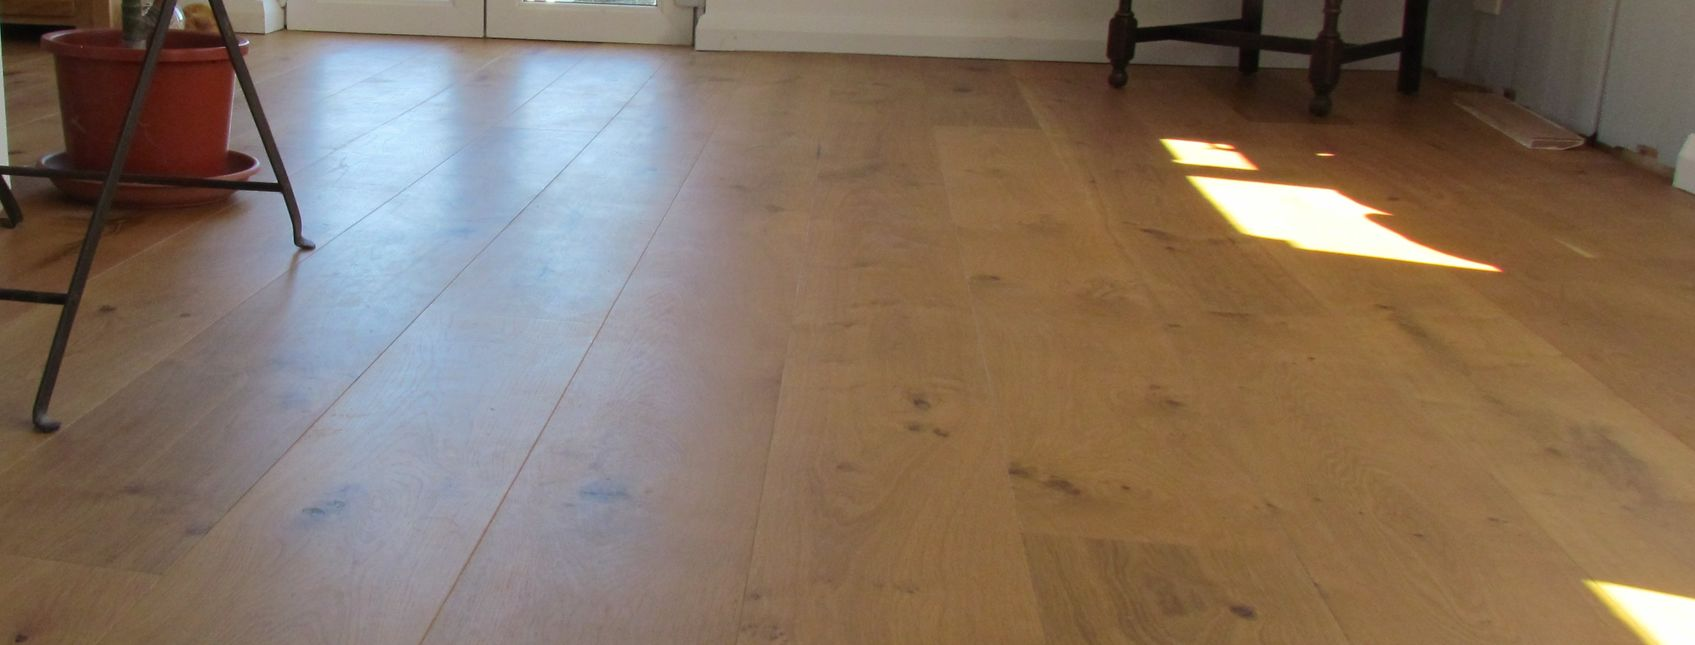 European oak after being treated with clear hardwax oil